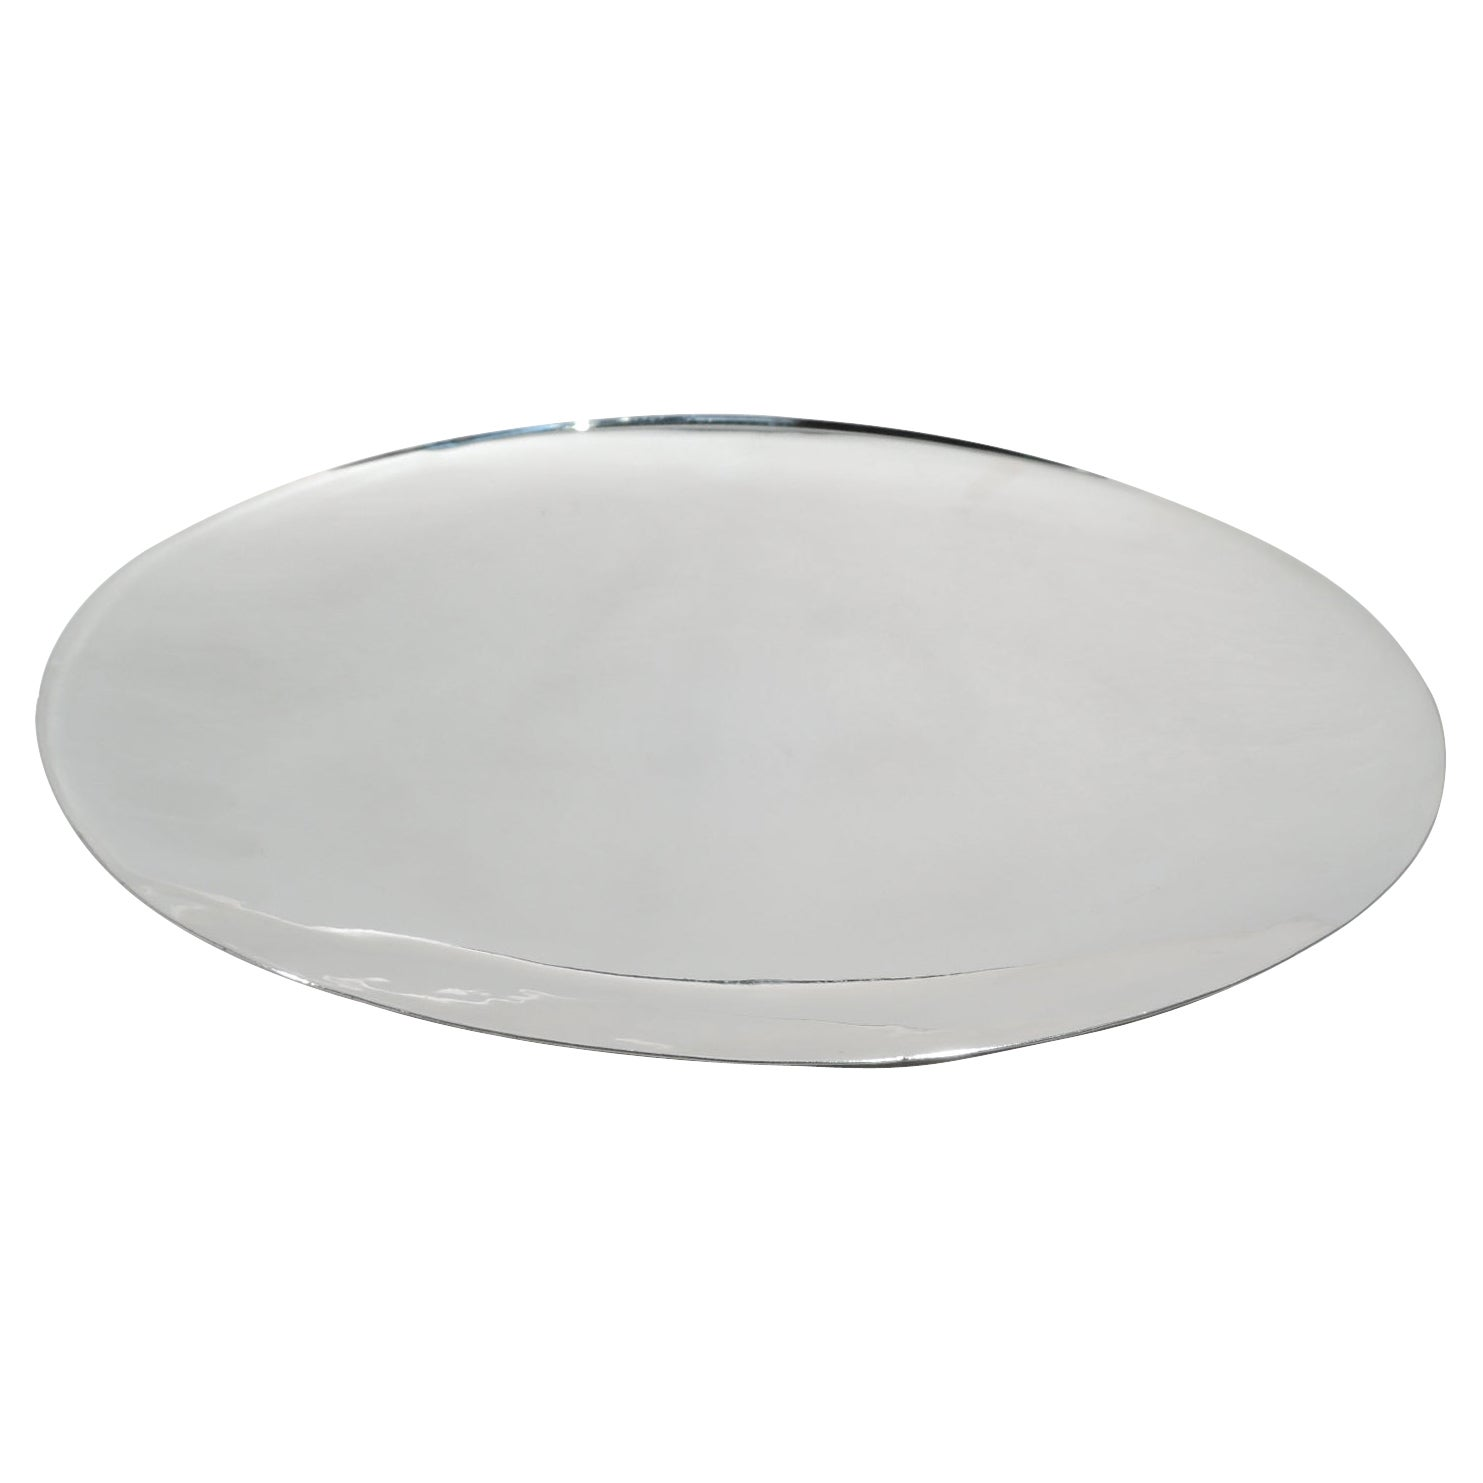 Cartier Mid-Century Modern Sterling Silver Footed Plate